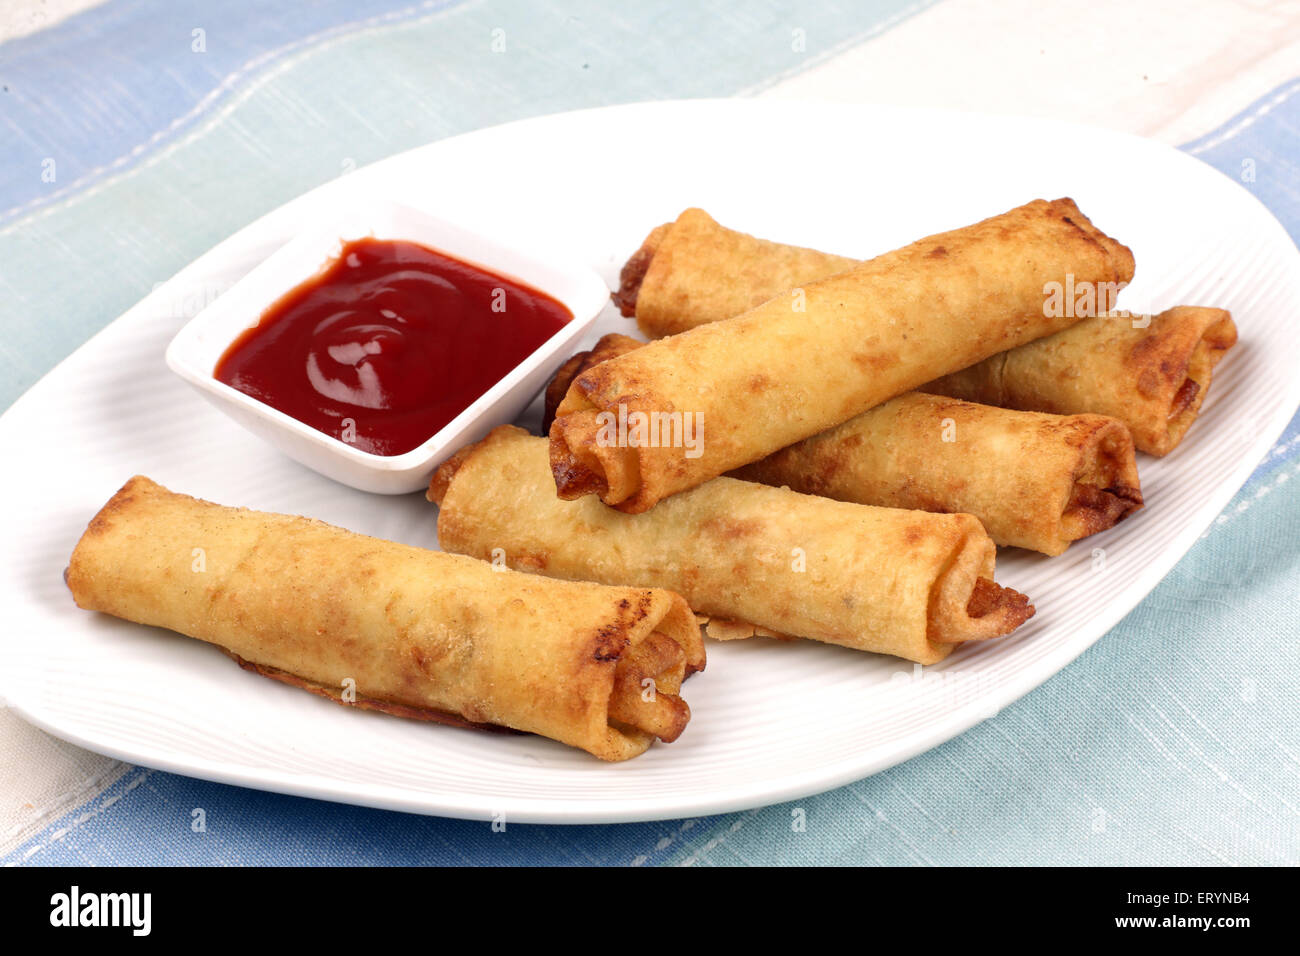 Chinese food Vegetable spring rolls in plate India PR#743AH - Stock Image